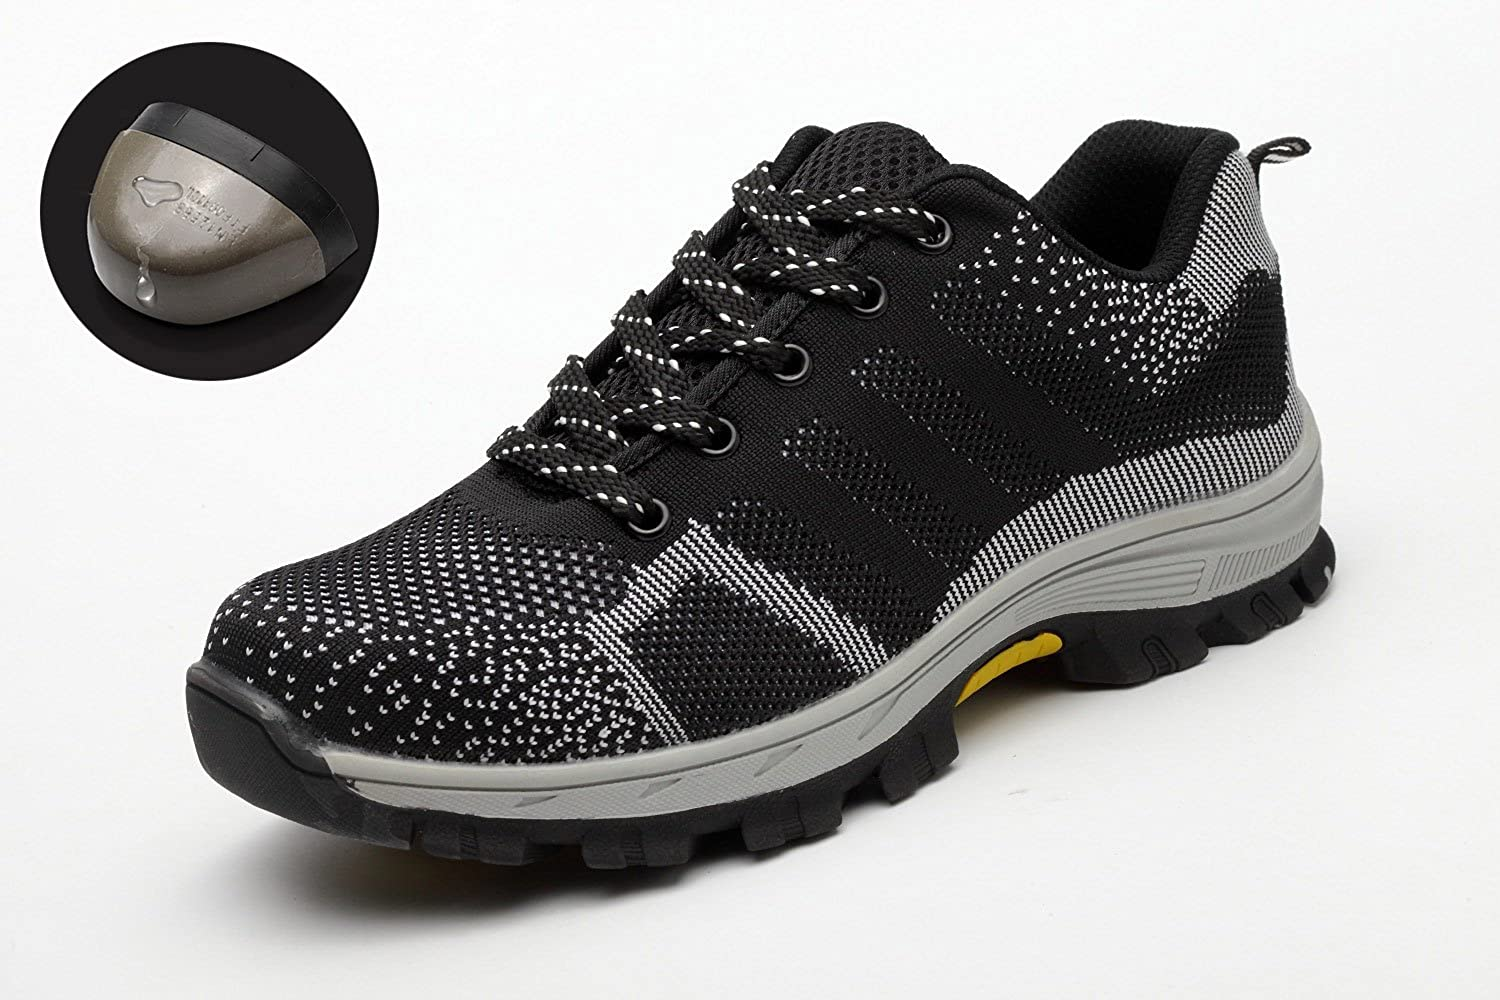 ba825ec8ecb Mens Womens Safety Trainers Shoes Steel Toe Cap Work Shoes Lightweight  Hiker Midsole Protection